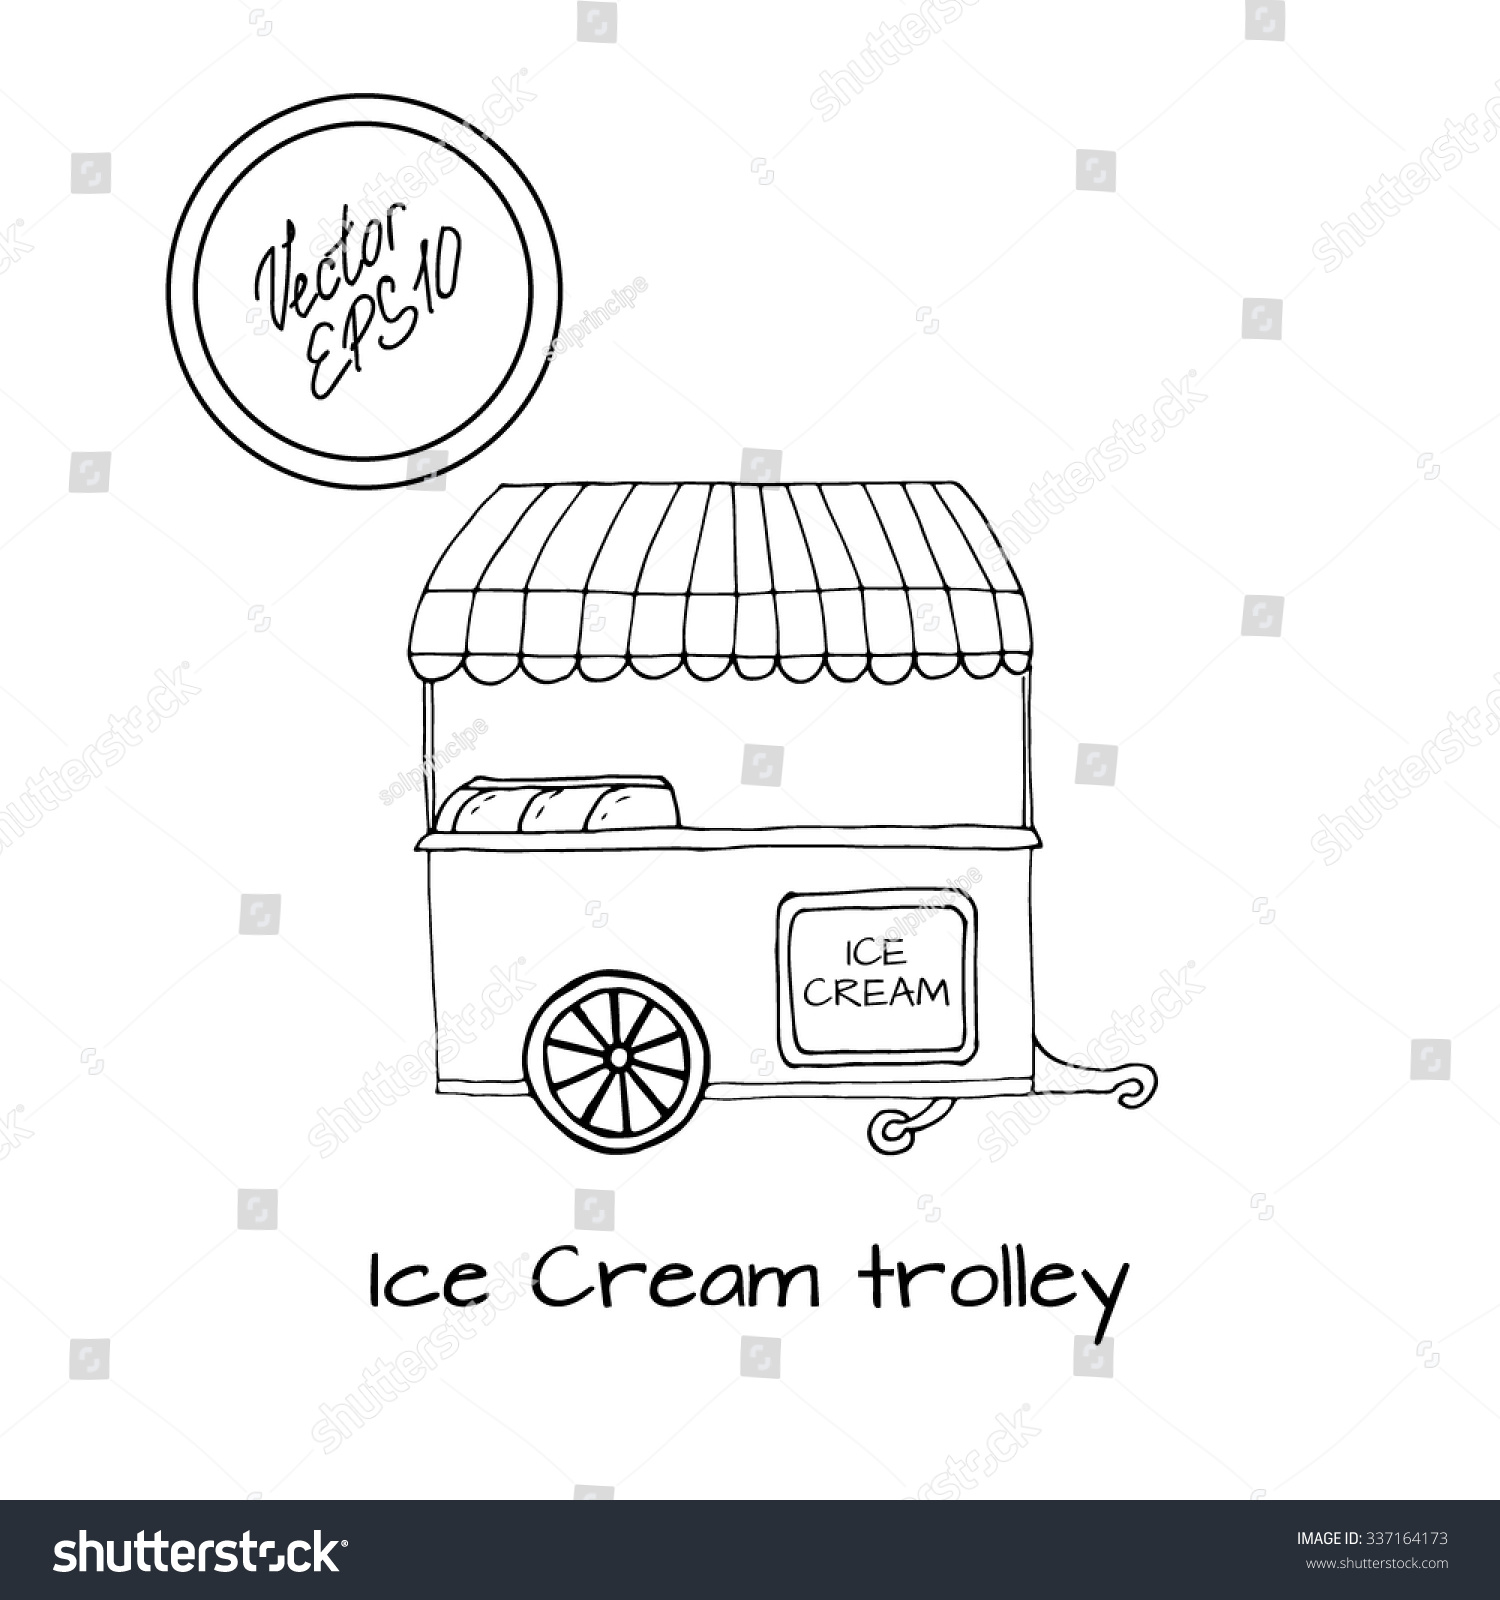 Hand drawn sketch of ice cream trolley black and white sketch front view with